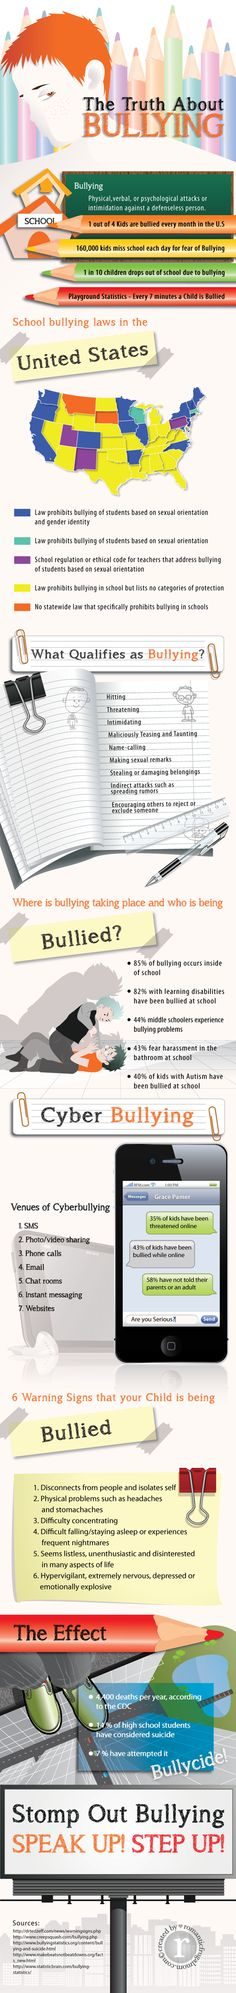 School bullying is a constant issue that never seems to go away. The best preventative measures require constant attention from school administrators,